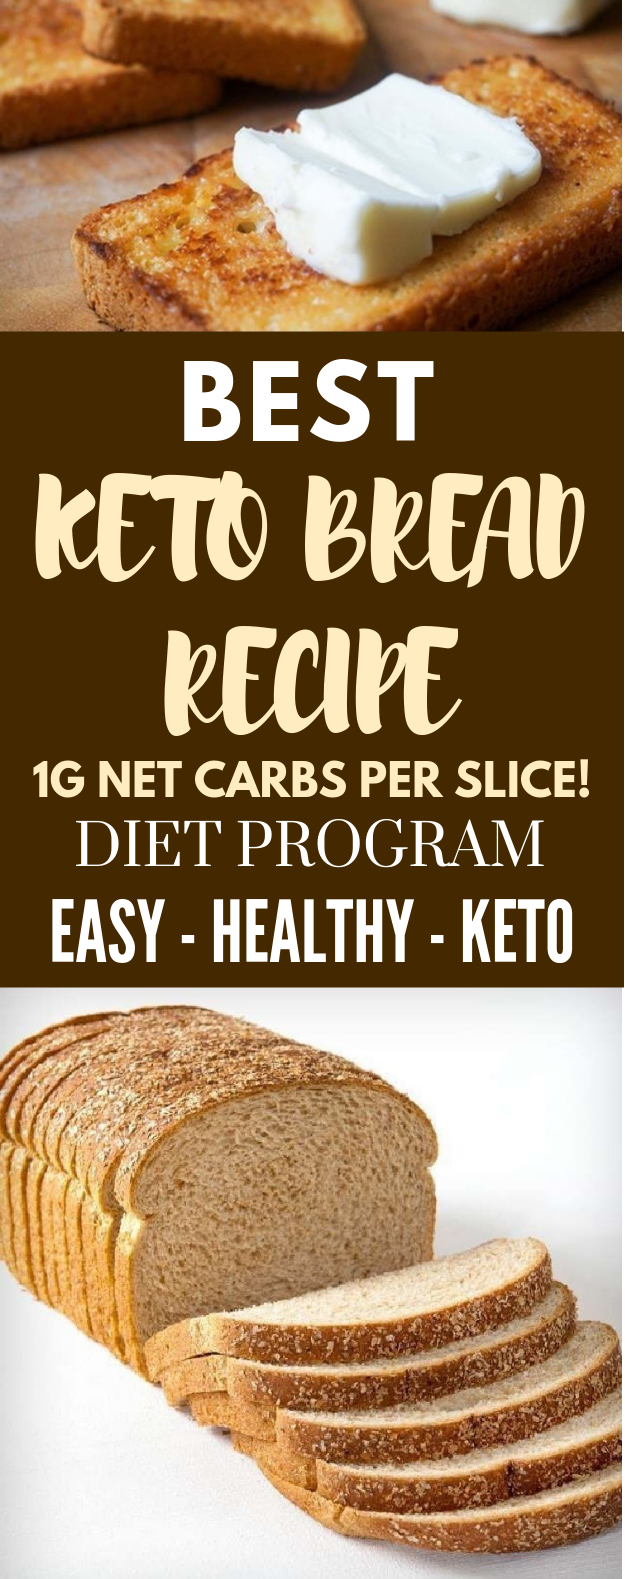 Best Keto Bread Recipe #Diet #Ketogenic